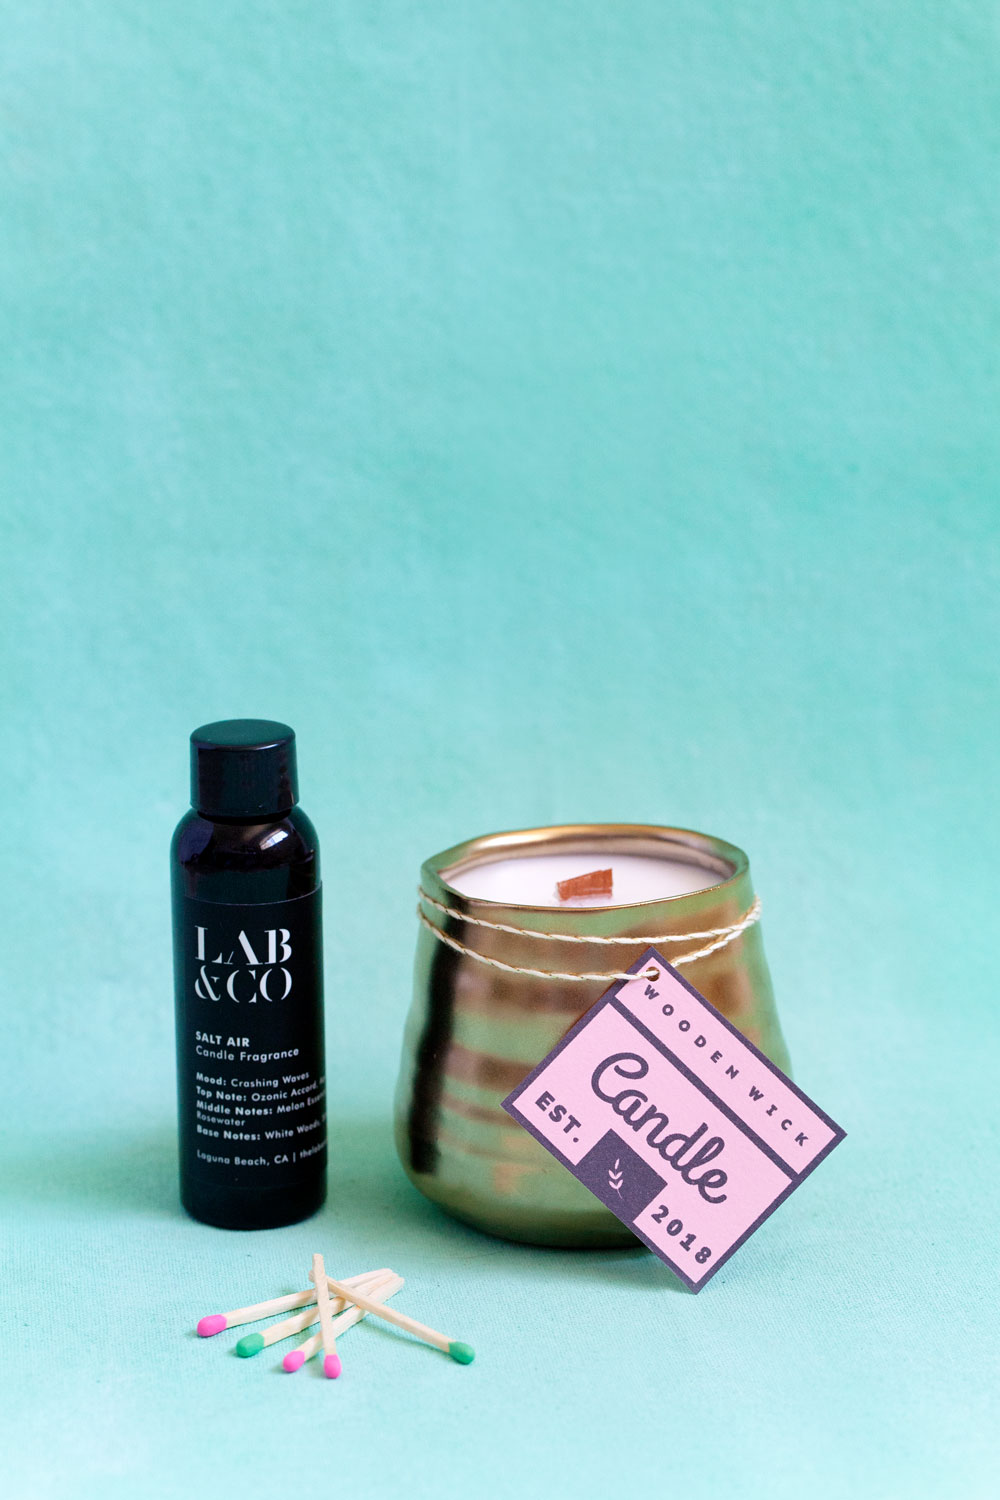 Learn how to make these amazing DIY luxury candles with this amazing company Lab & co.